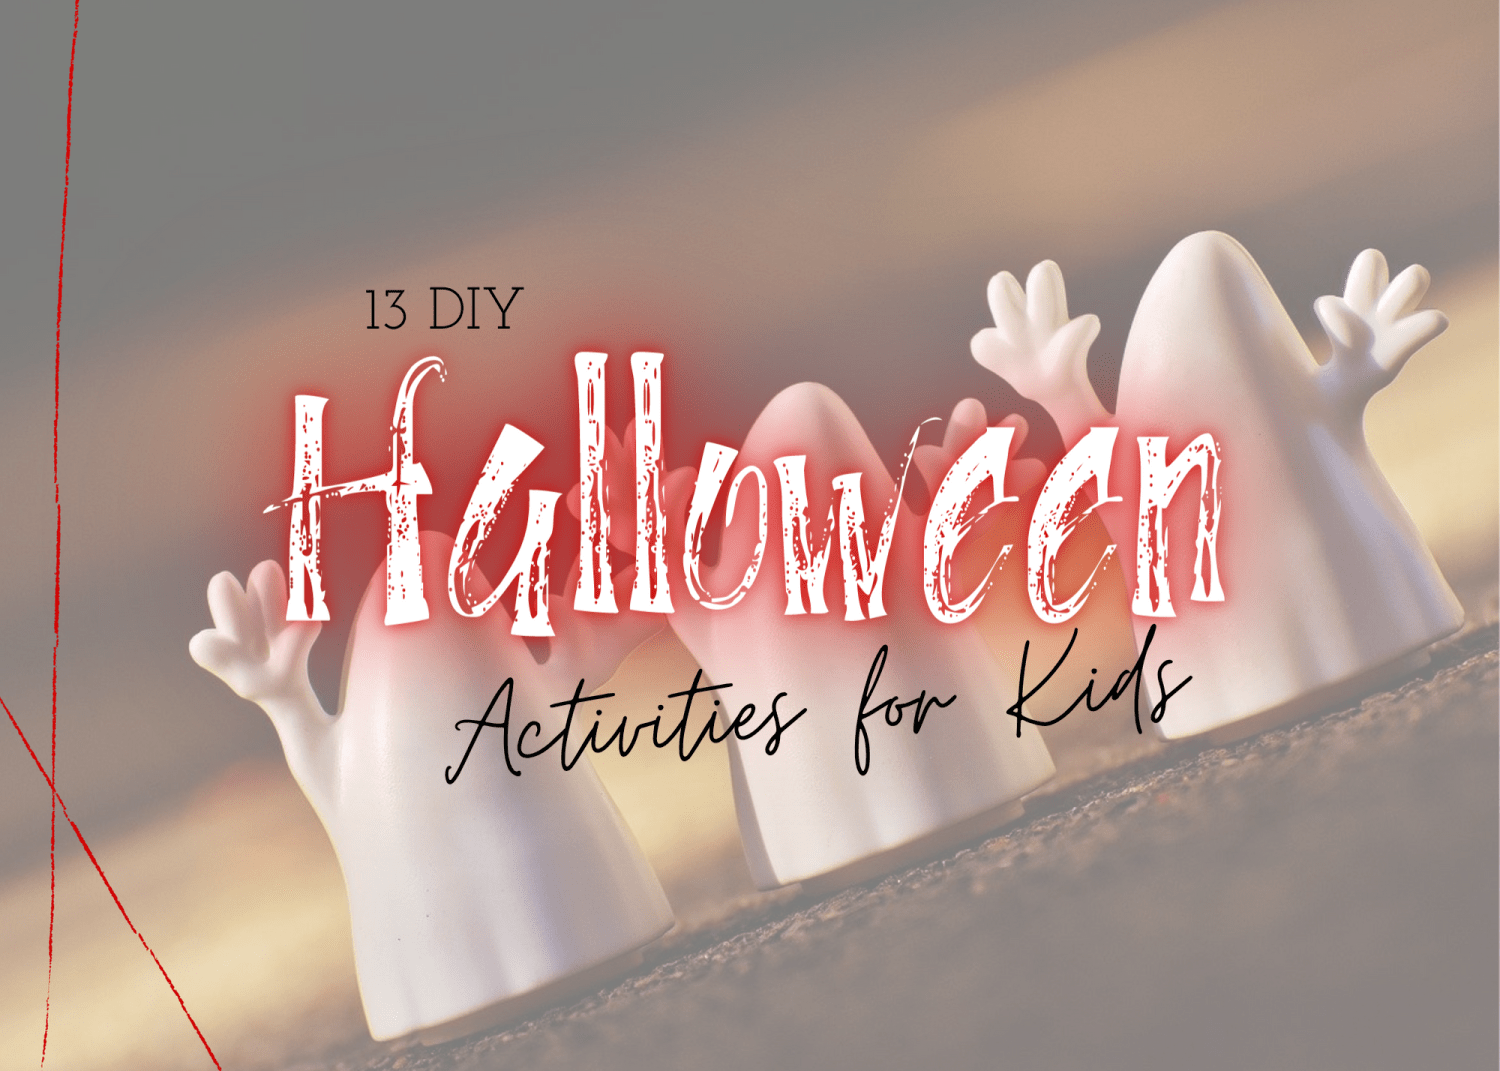 DIY, do it yourself, holiday, lifestyle, kids, activities, things to do, crafts, freebies, printables, halloween, spooky, decorations, games, imagination, family friendly, art, play, make, watch, little conquest